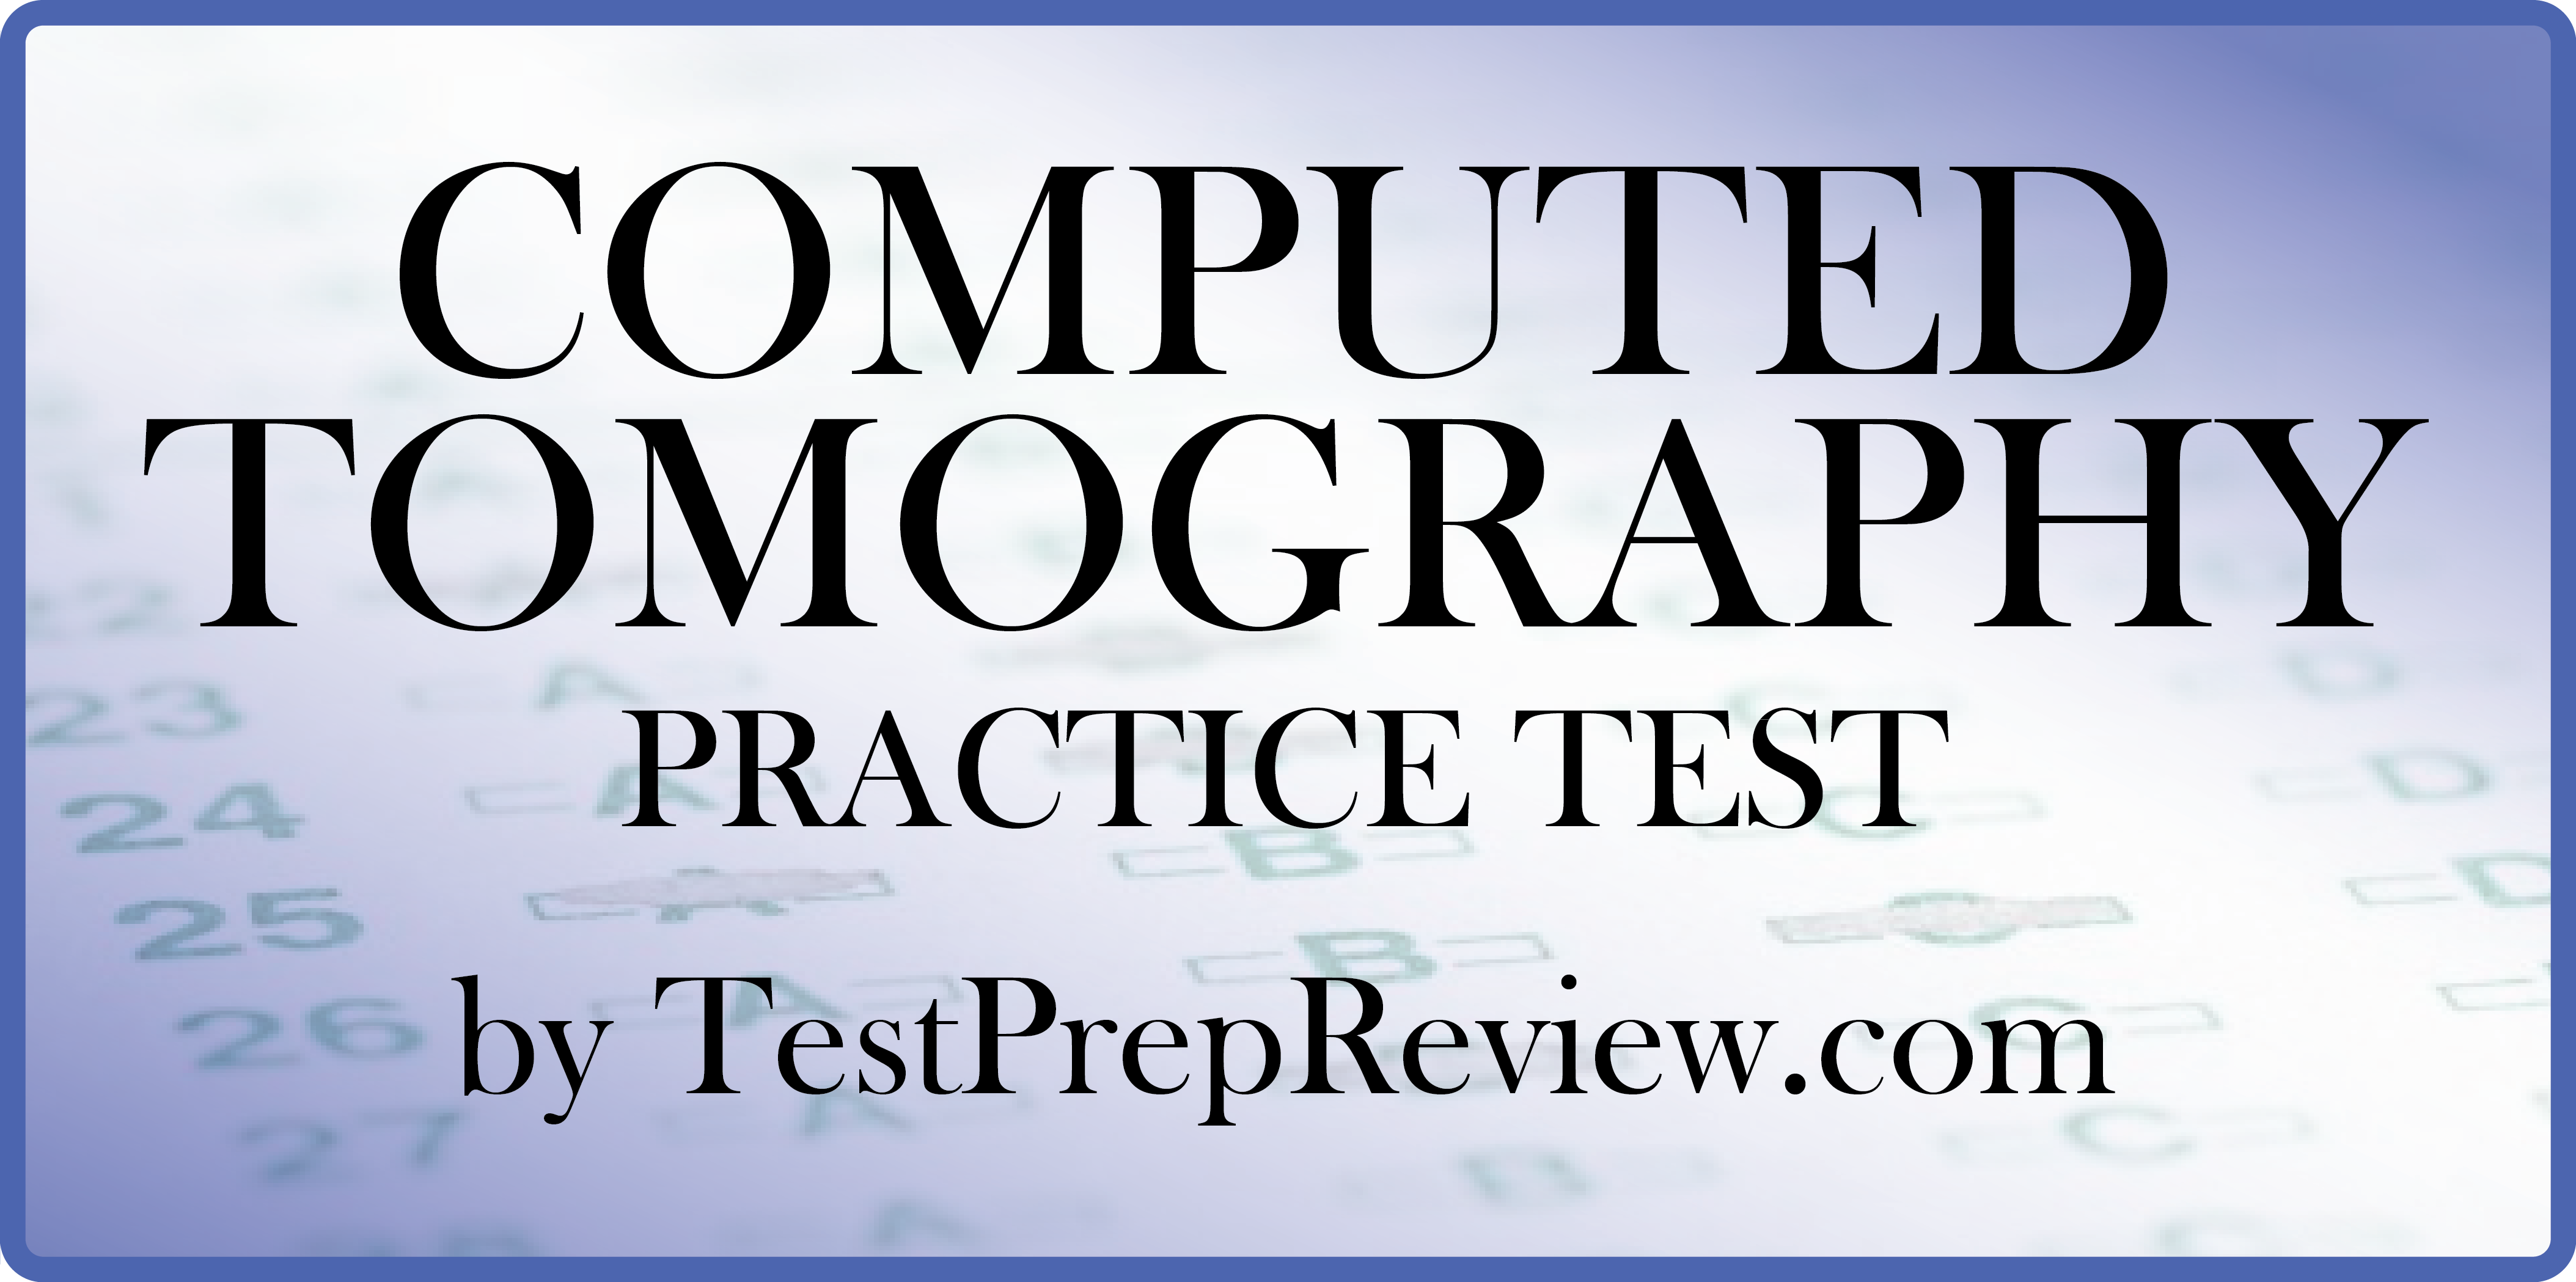 Free Computed Tomography Practice Test Questions by